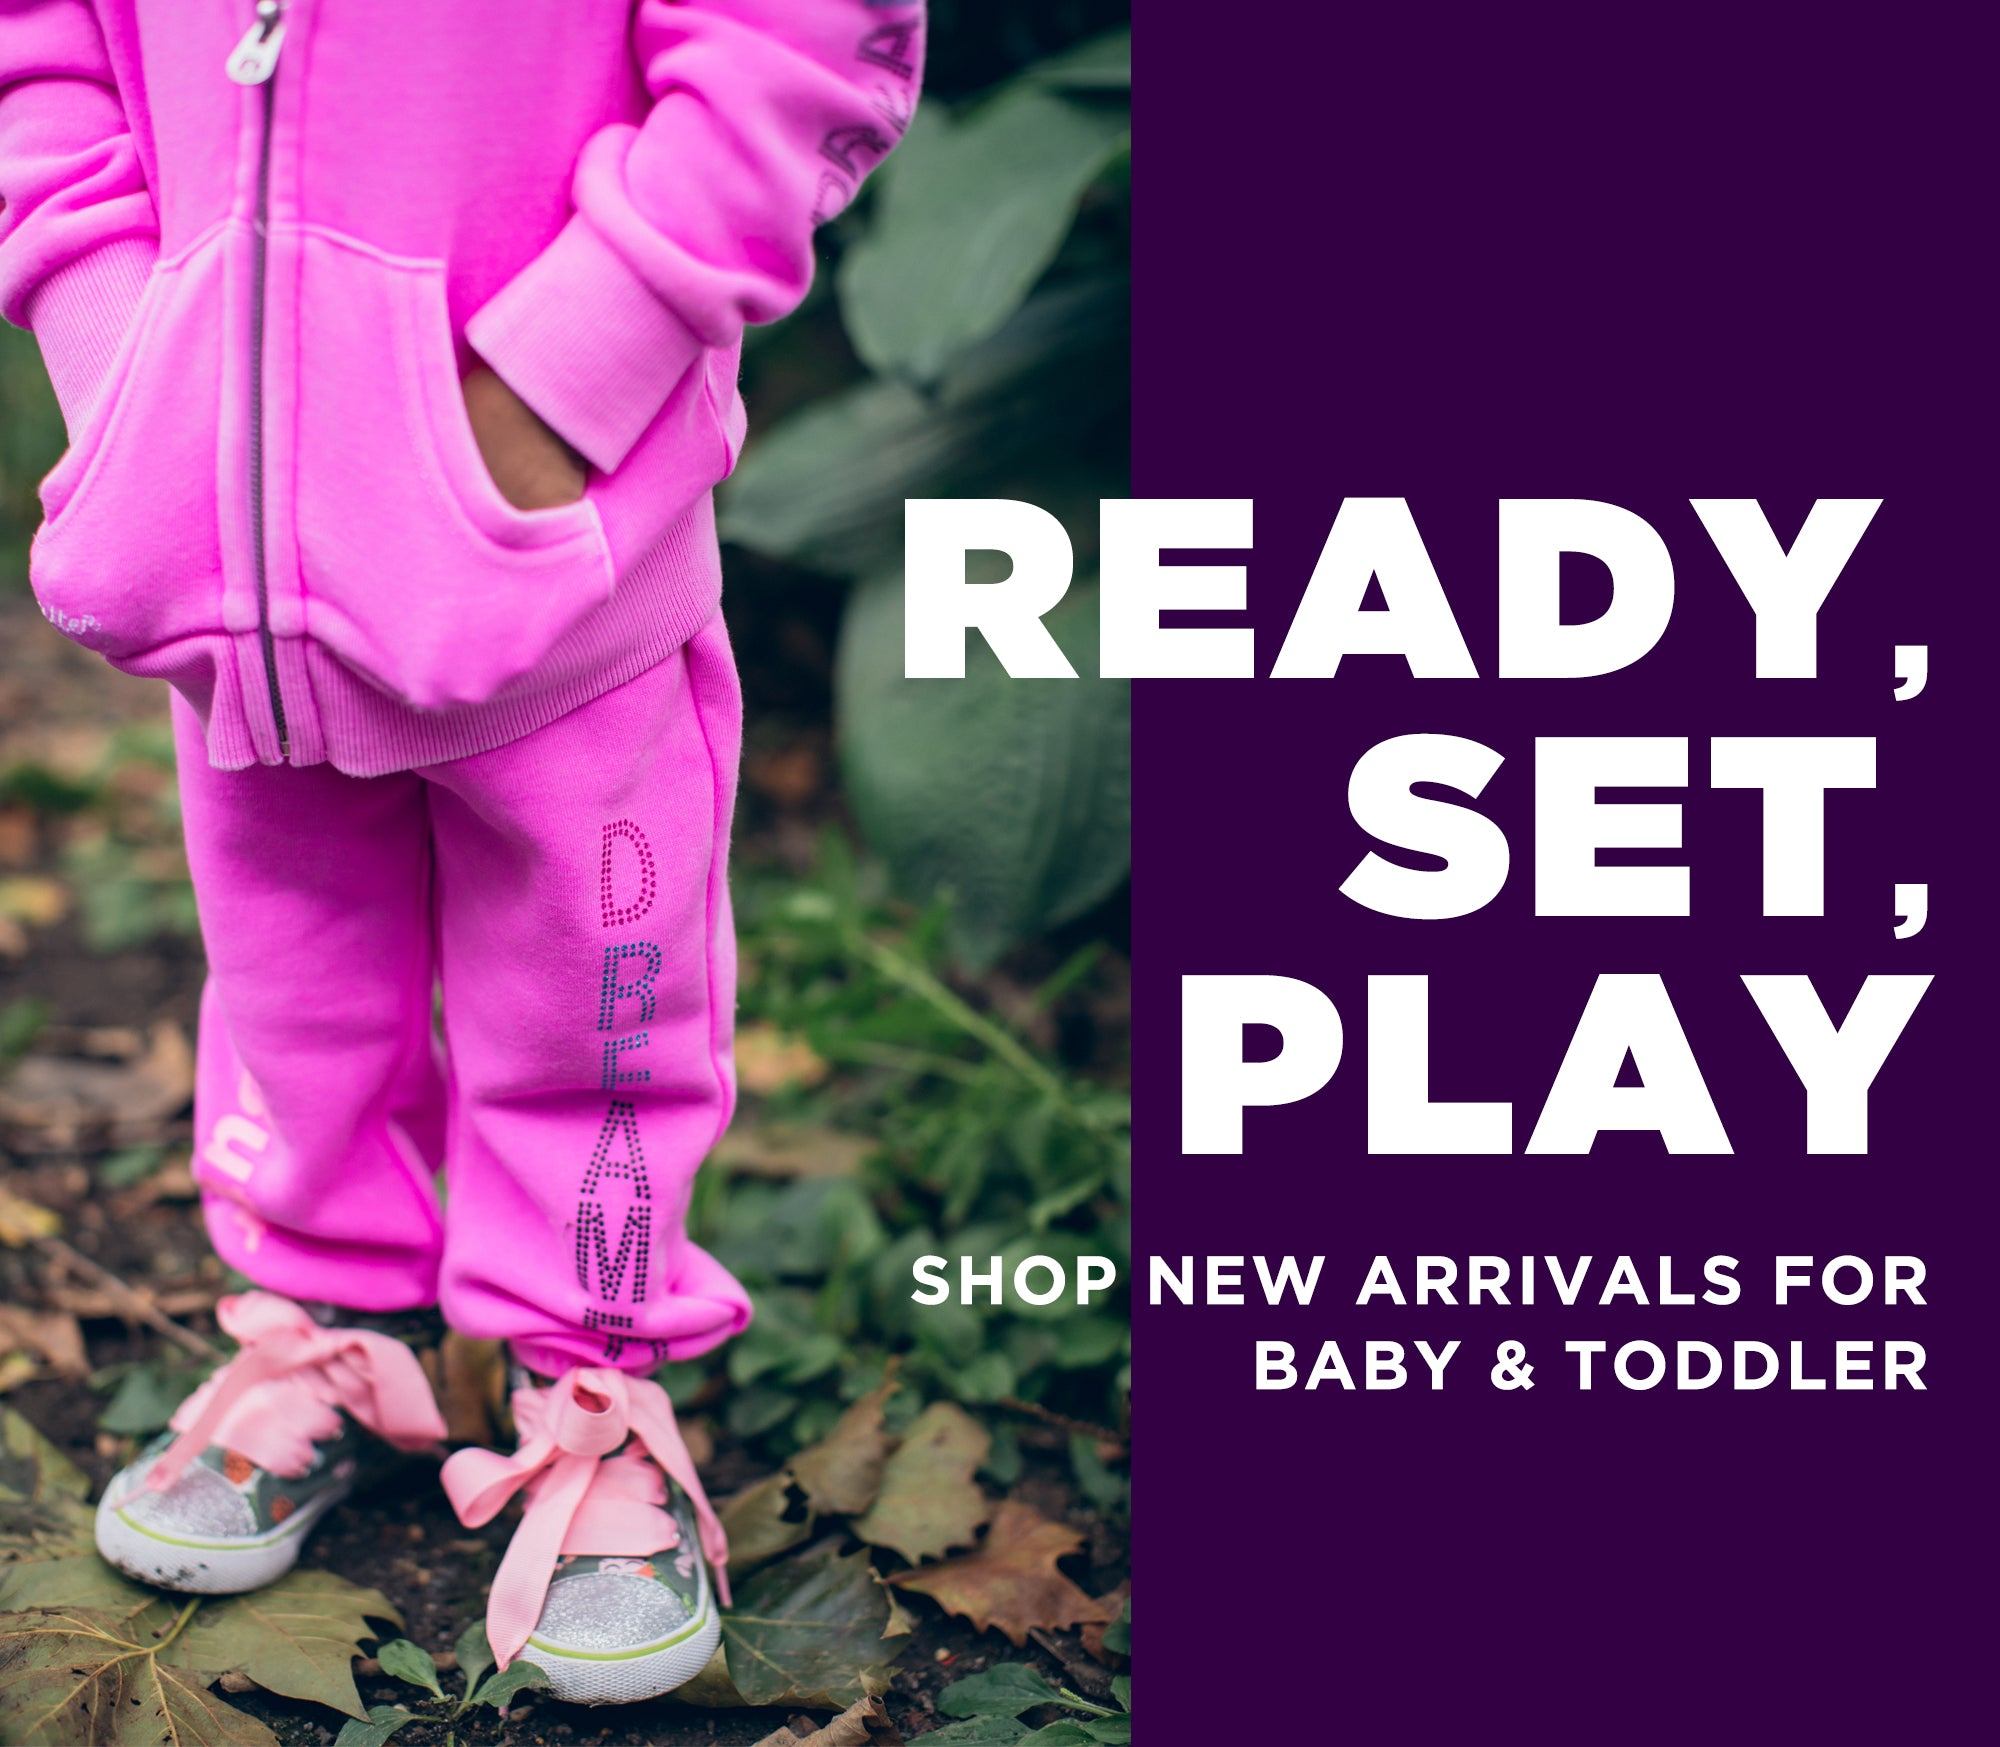 Ready, Set, Play. Shop new arrivals for baby & toddler